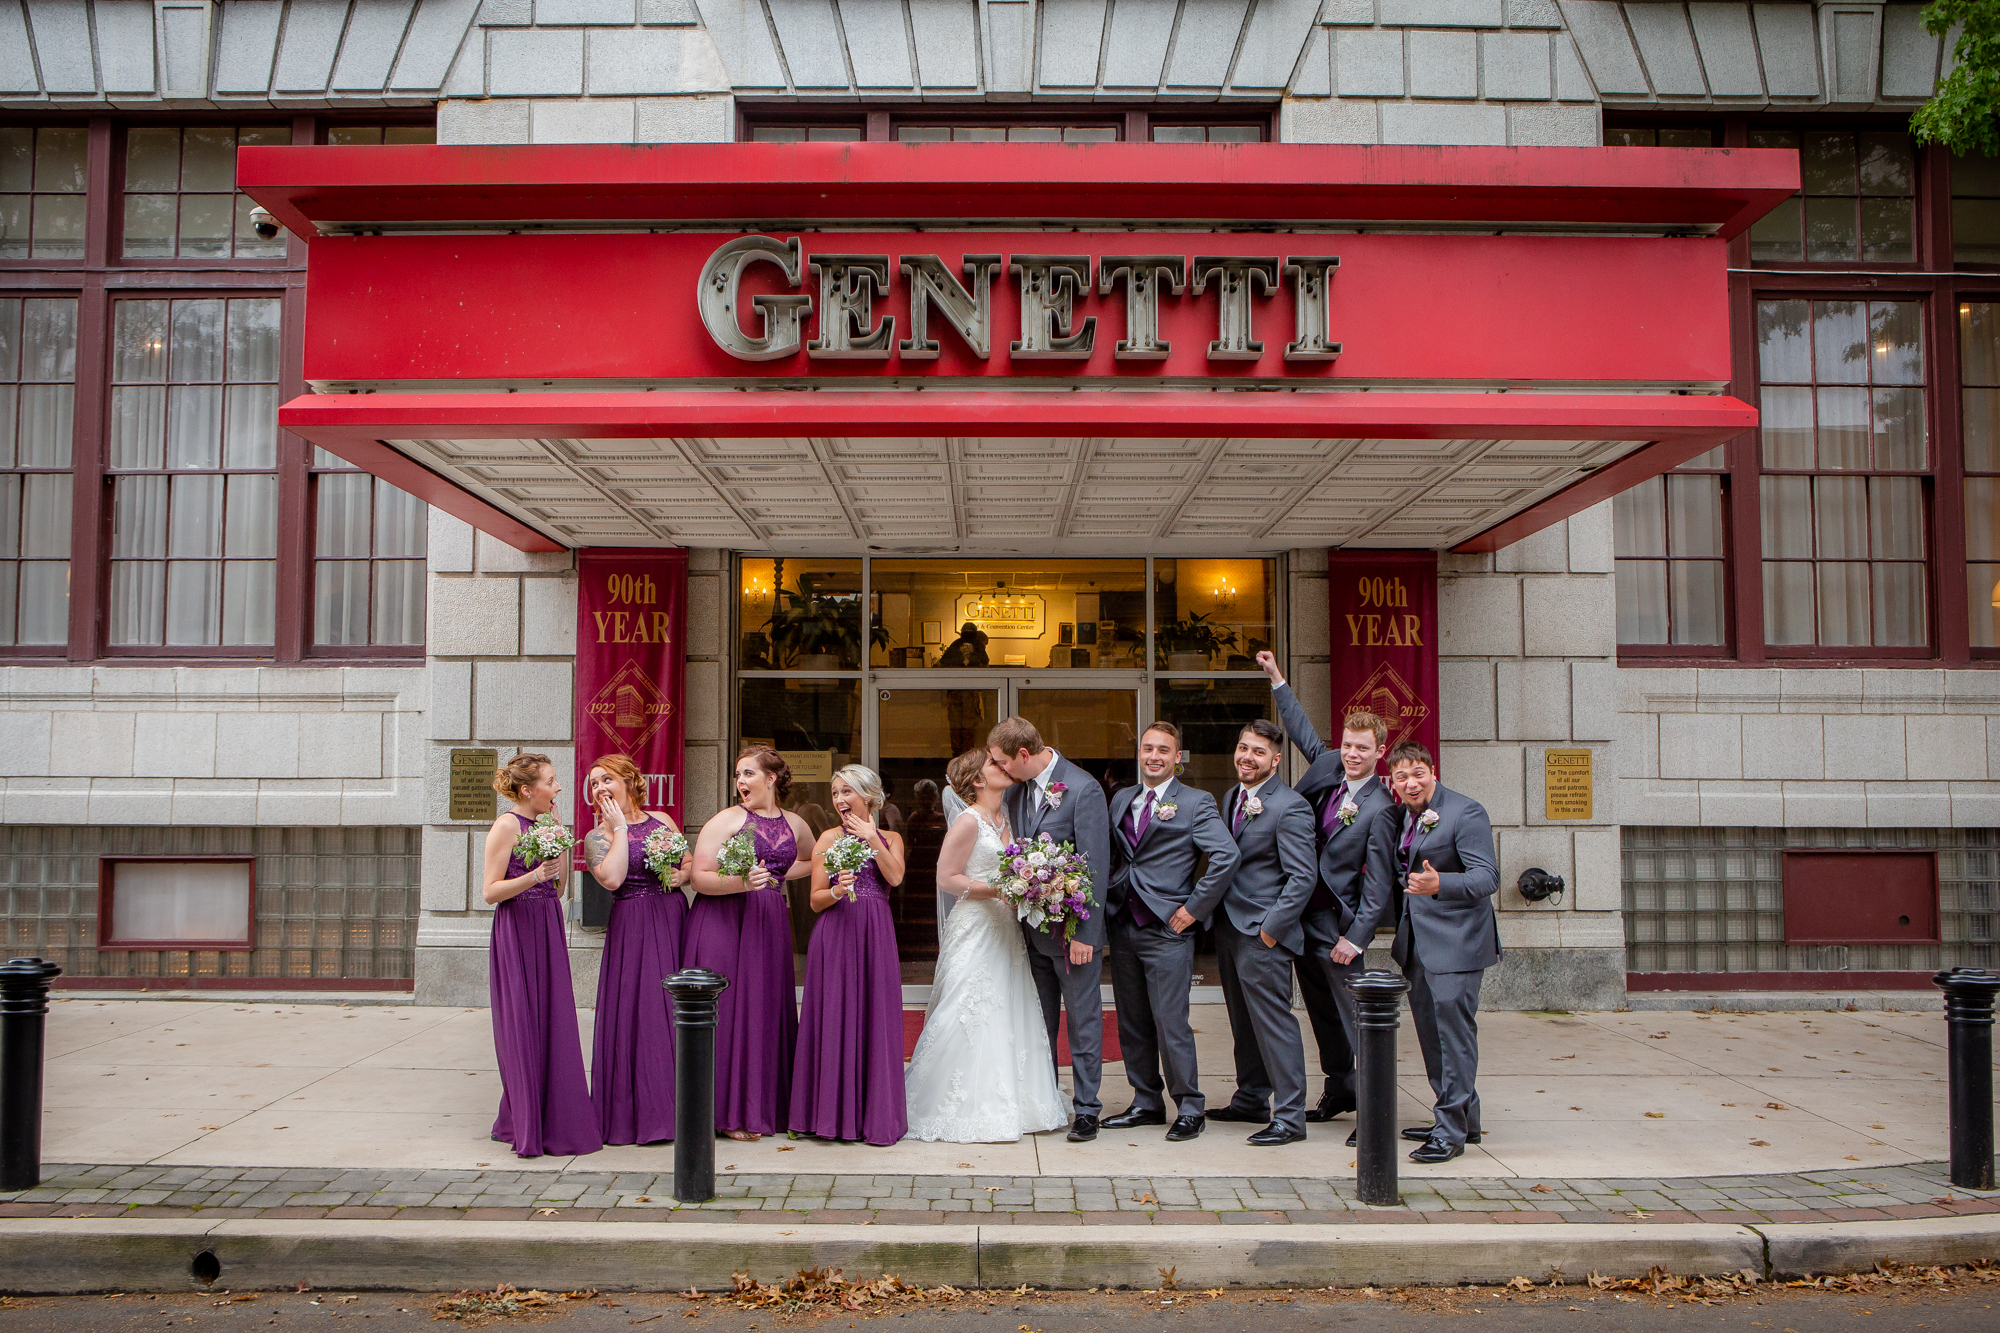 Genetti-Hotel-Williamsport-PA-Wedding-2883.jpg